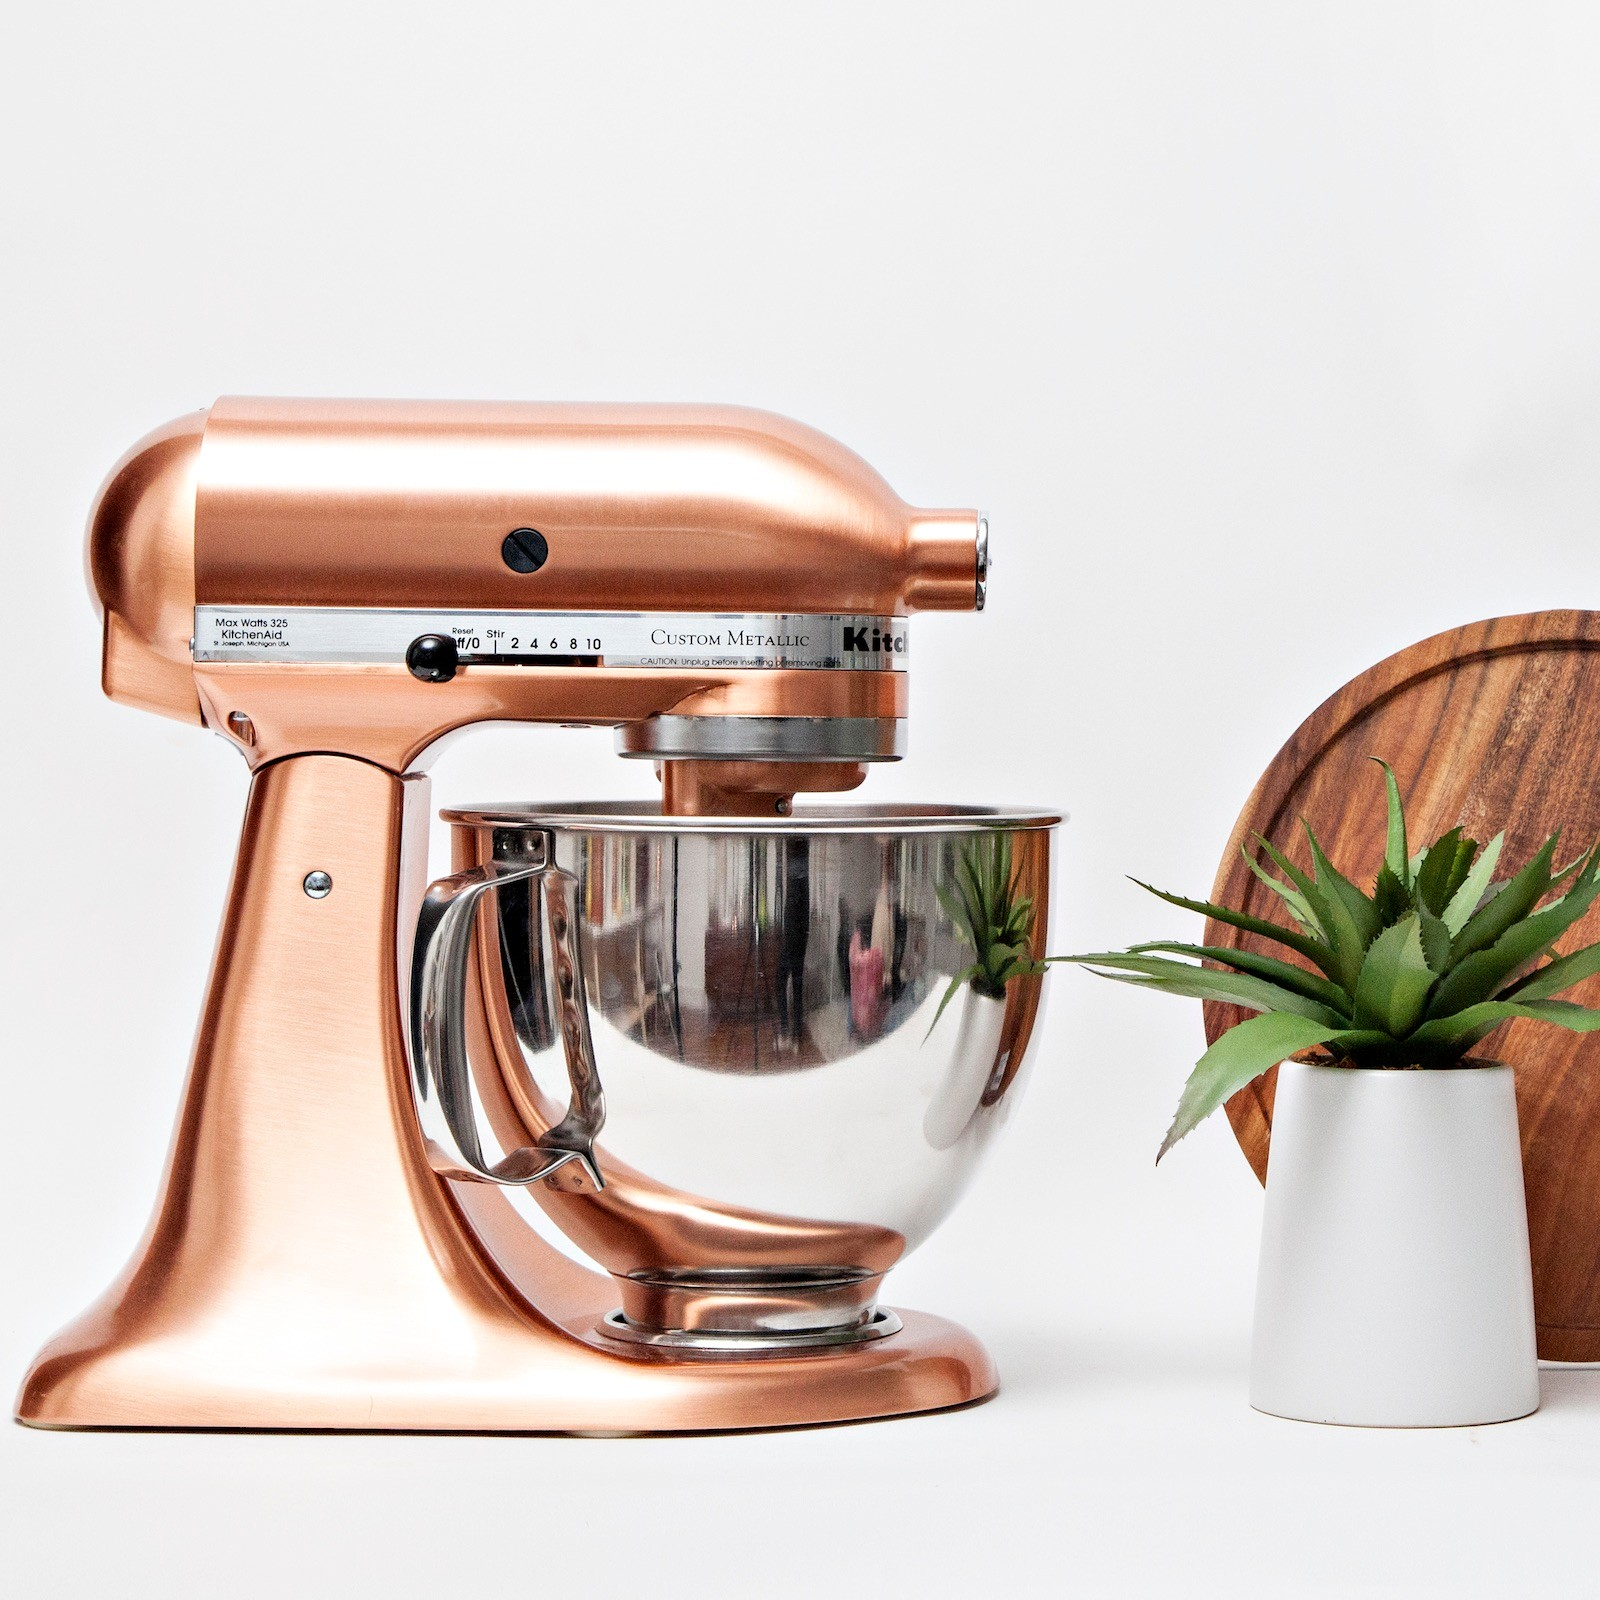 Custom Metallic Series 5 Qt. Tilt-Head Stand Mixer | Zola on kitchenaid blender parts, paint pole attachments, sunbeam stand mixer, kitchenaid ice cream maker, double oven stove, dyson attachments, dirt devil attachments, kitchenaid food processor, kitchenaid stand mixers,